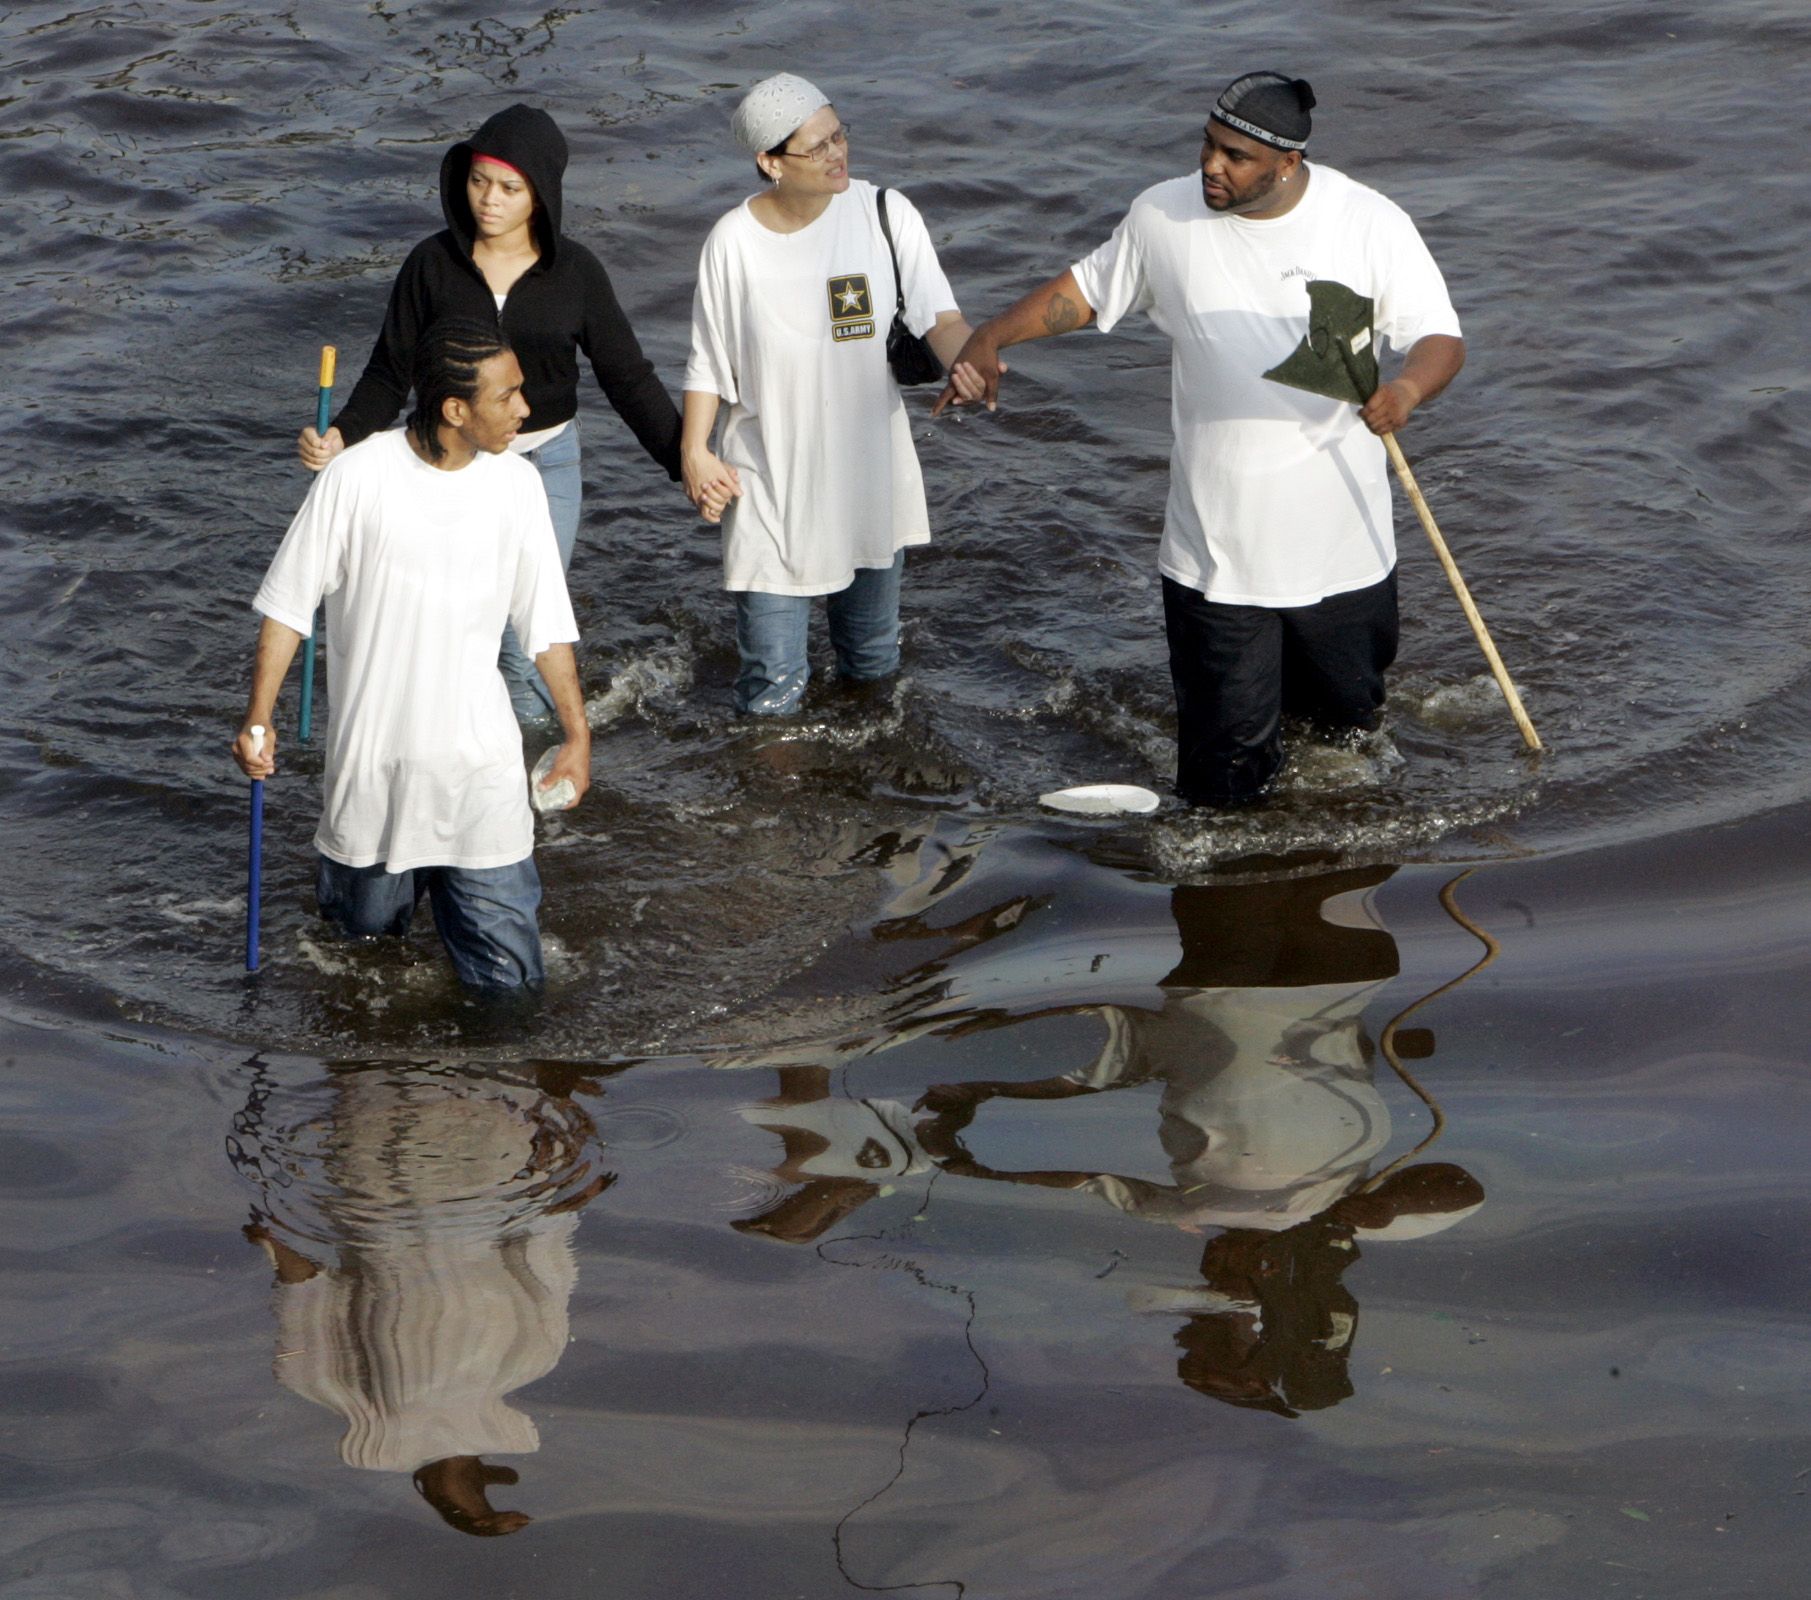 Remembering the 'forgotten' gulf state of Mississippi, 10 years after Katrina